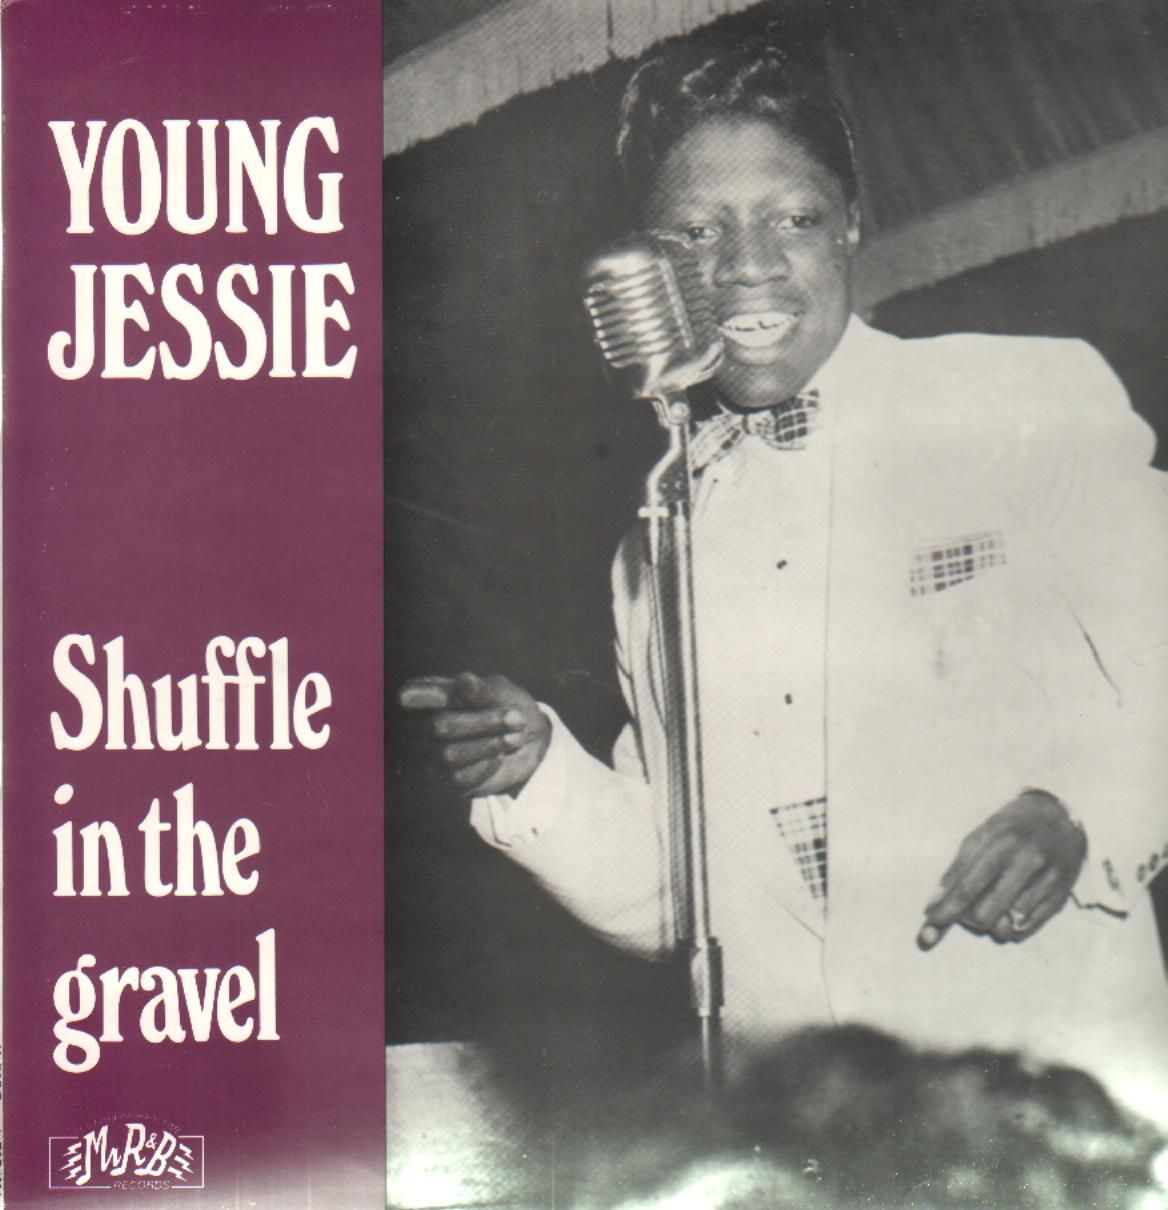 Young Jessie | Shuffle in the gravel